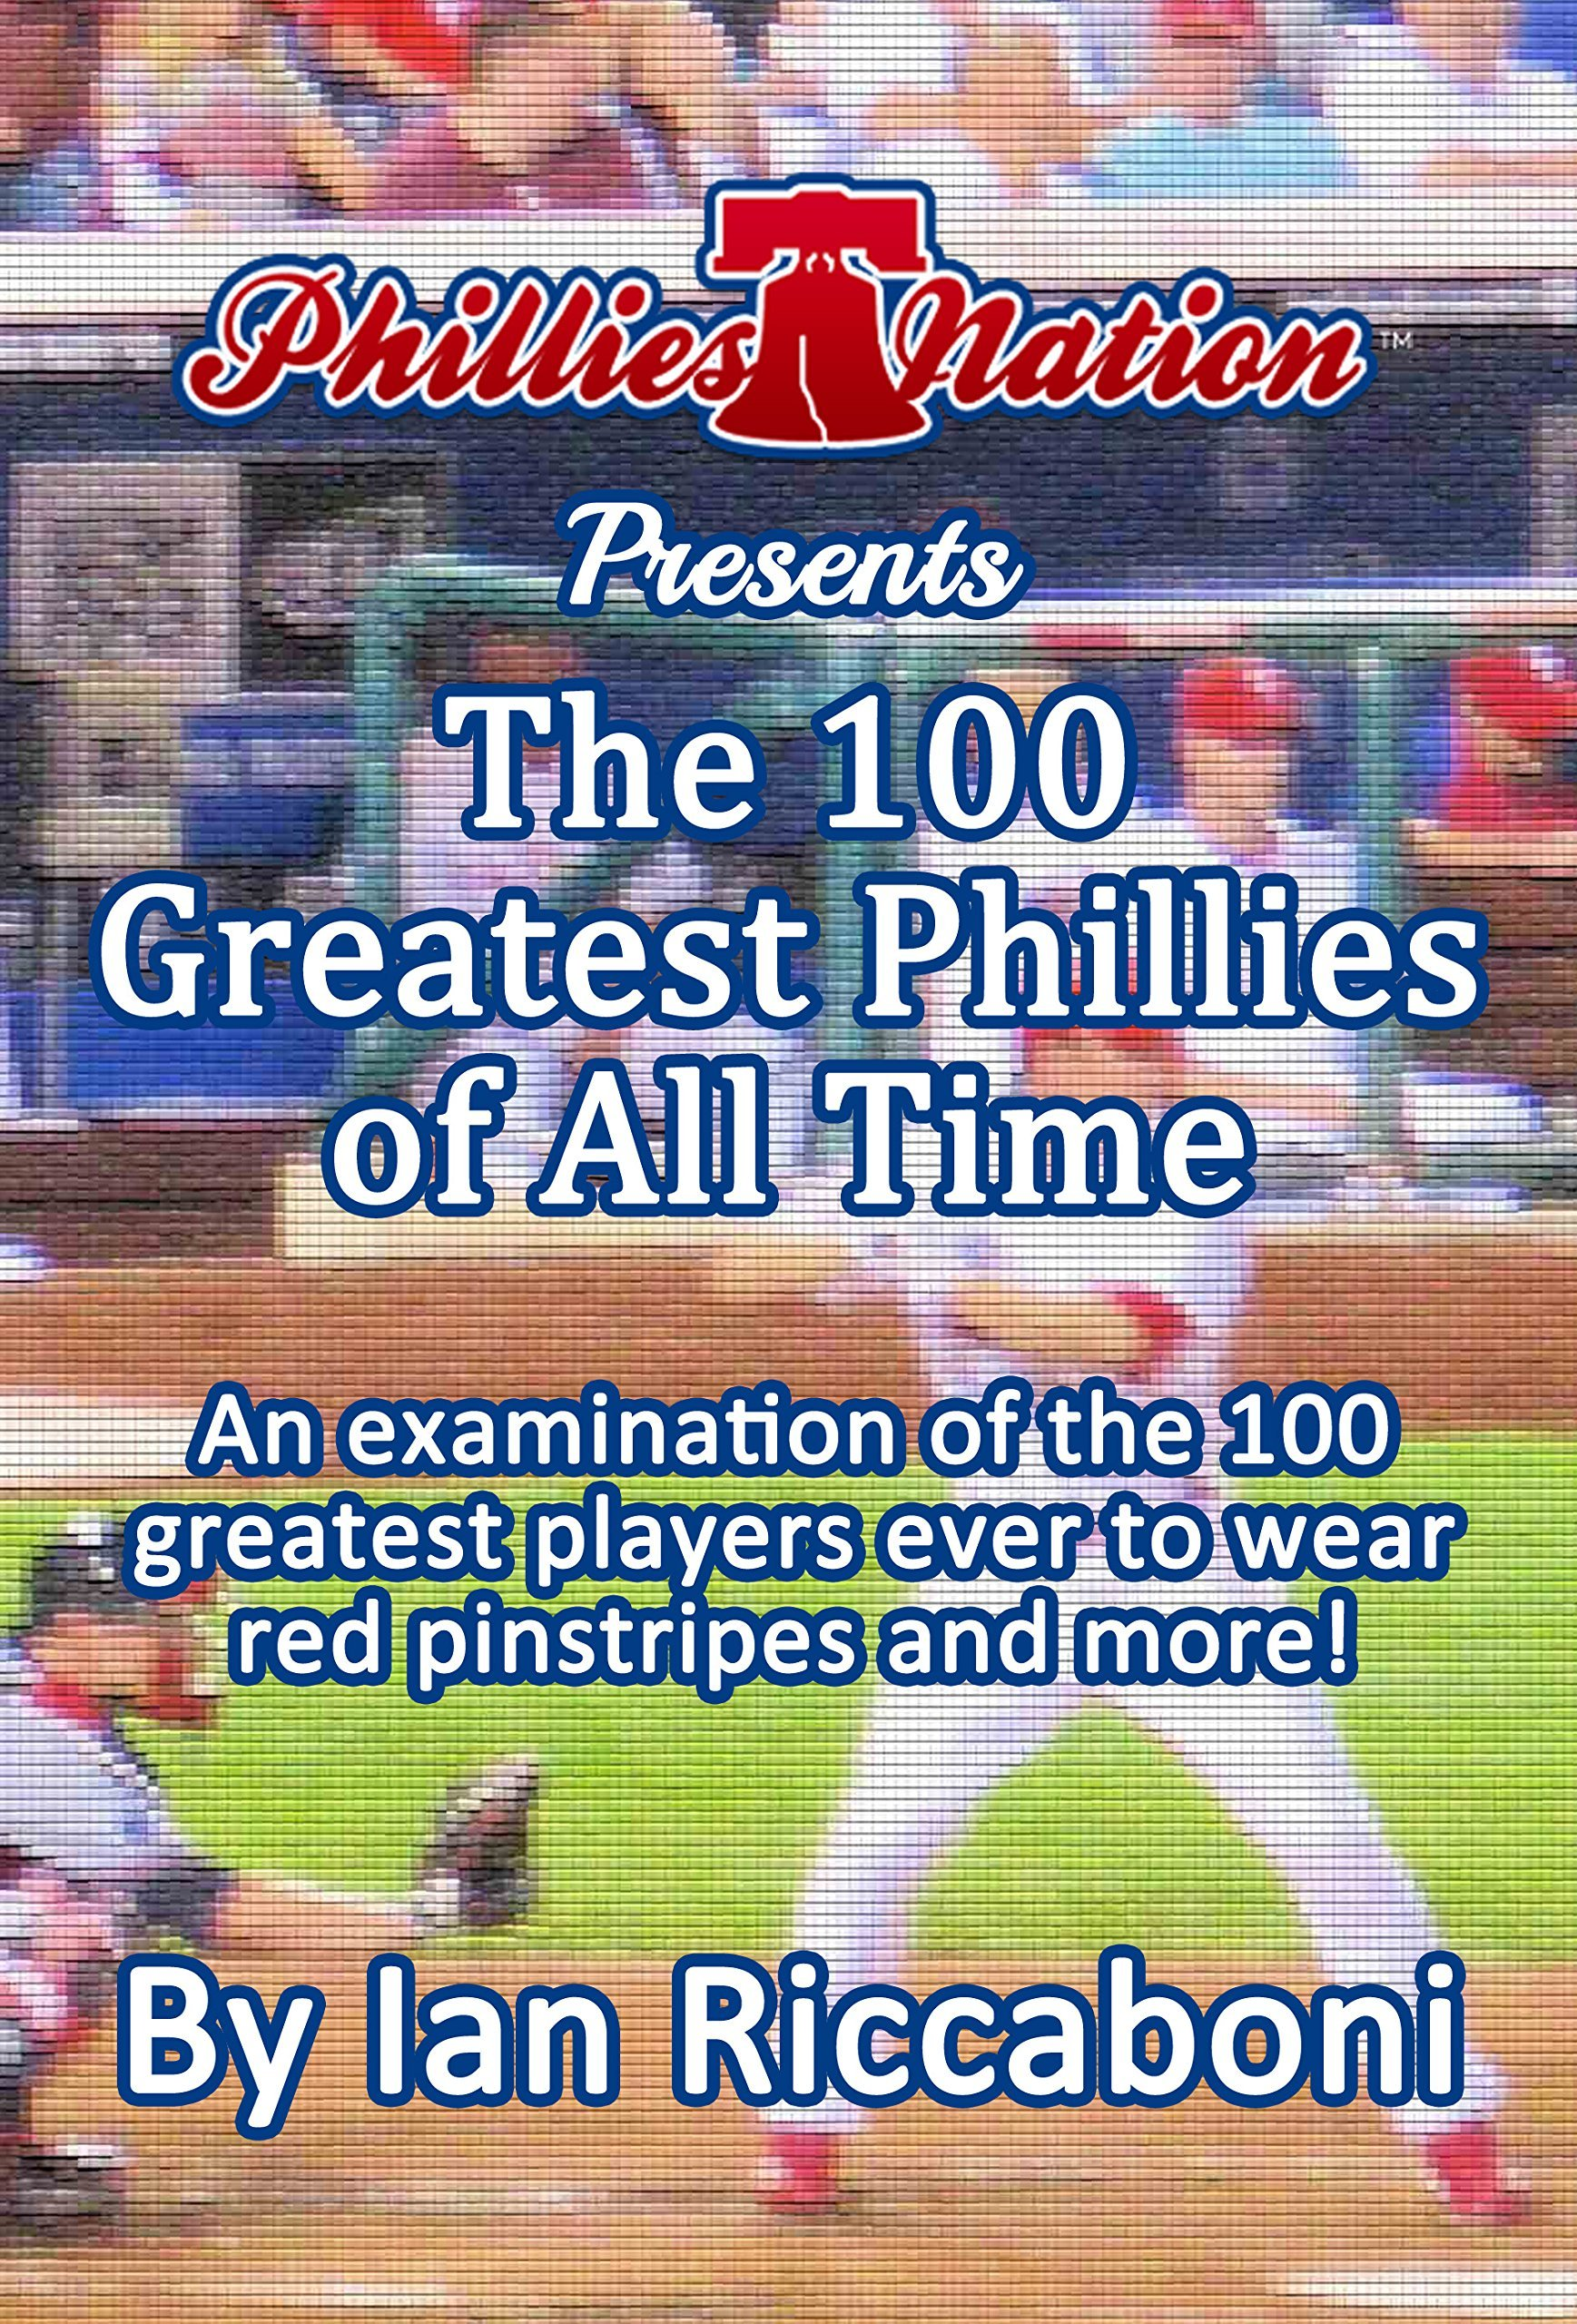 Image OfPhillies Nation Presents The 100 Greatest Phillies Of All Time: An Examination Of The 100 Greatest Players To Wear Red Pin...